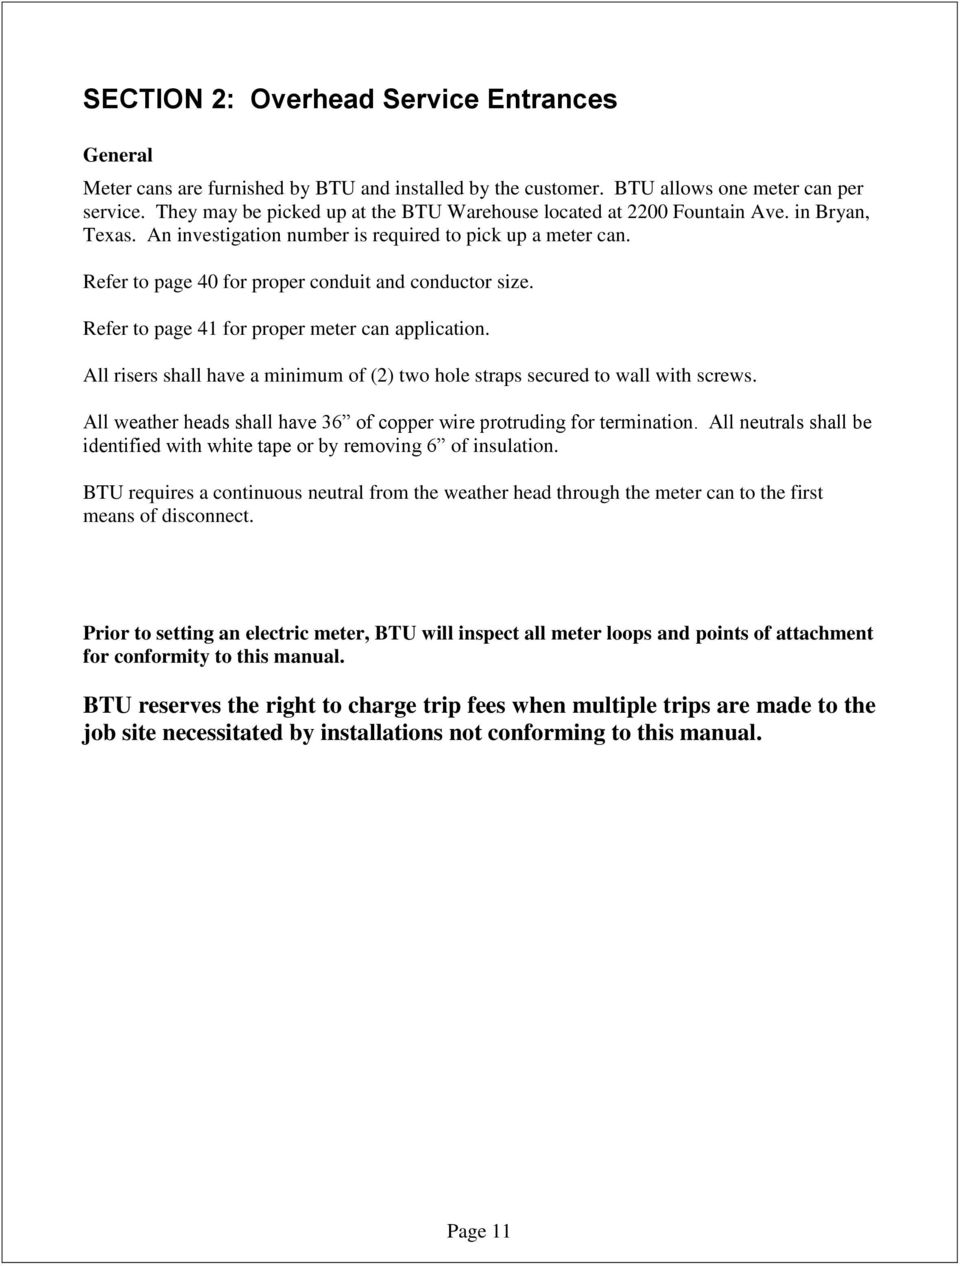 SERVICE ENTRANCE REQUIREMENTS MANUAL - PDF